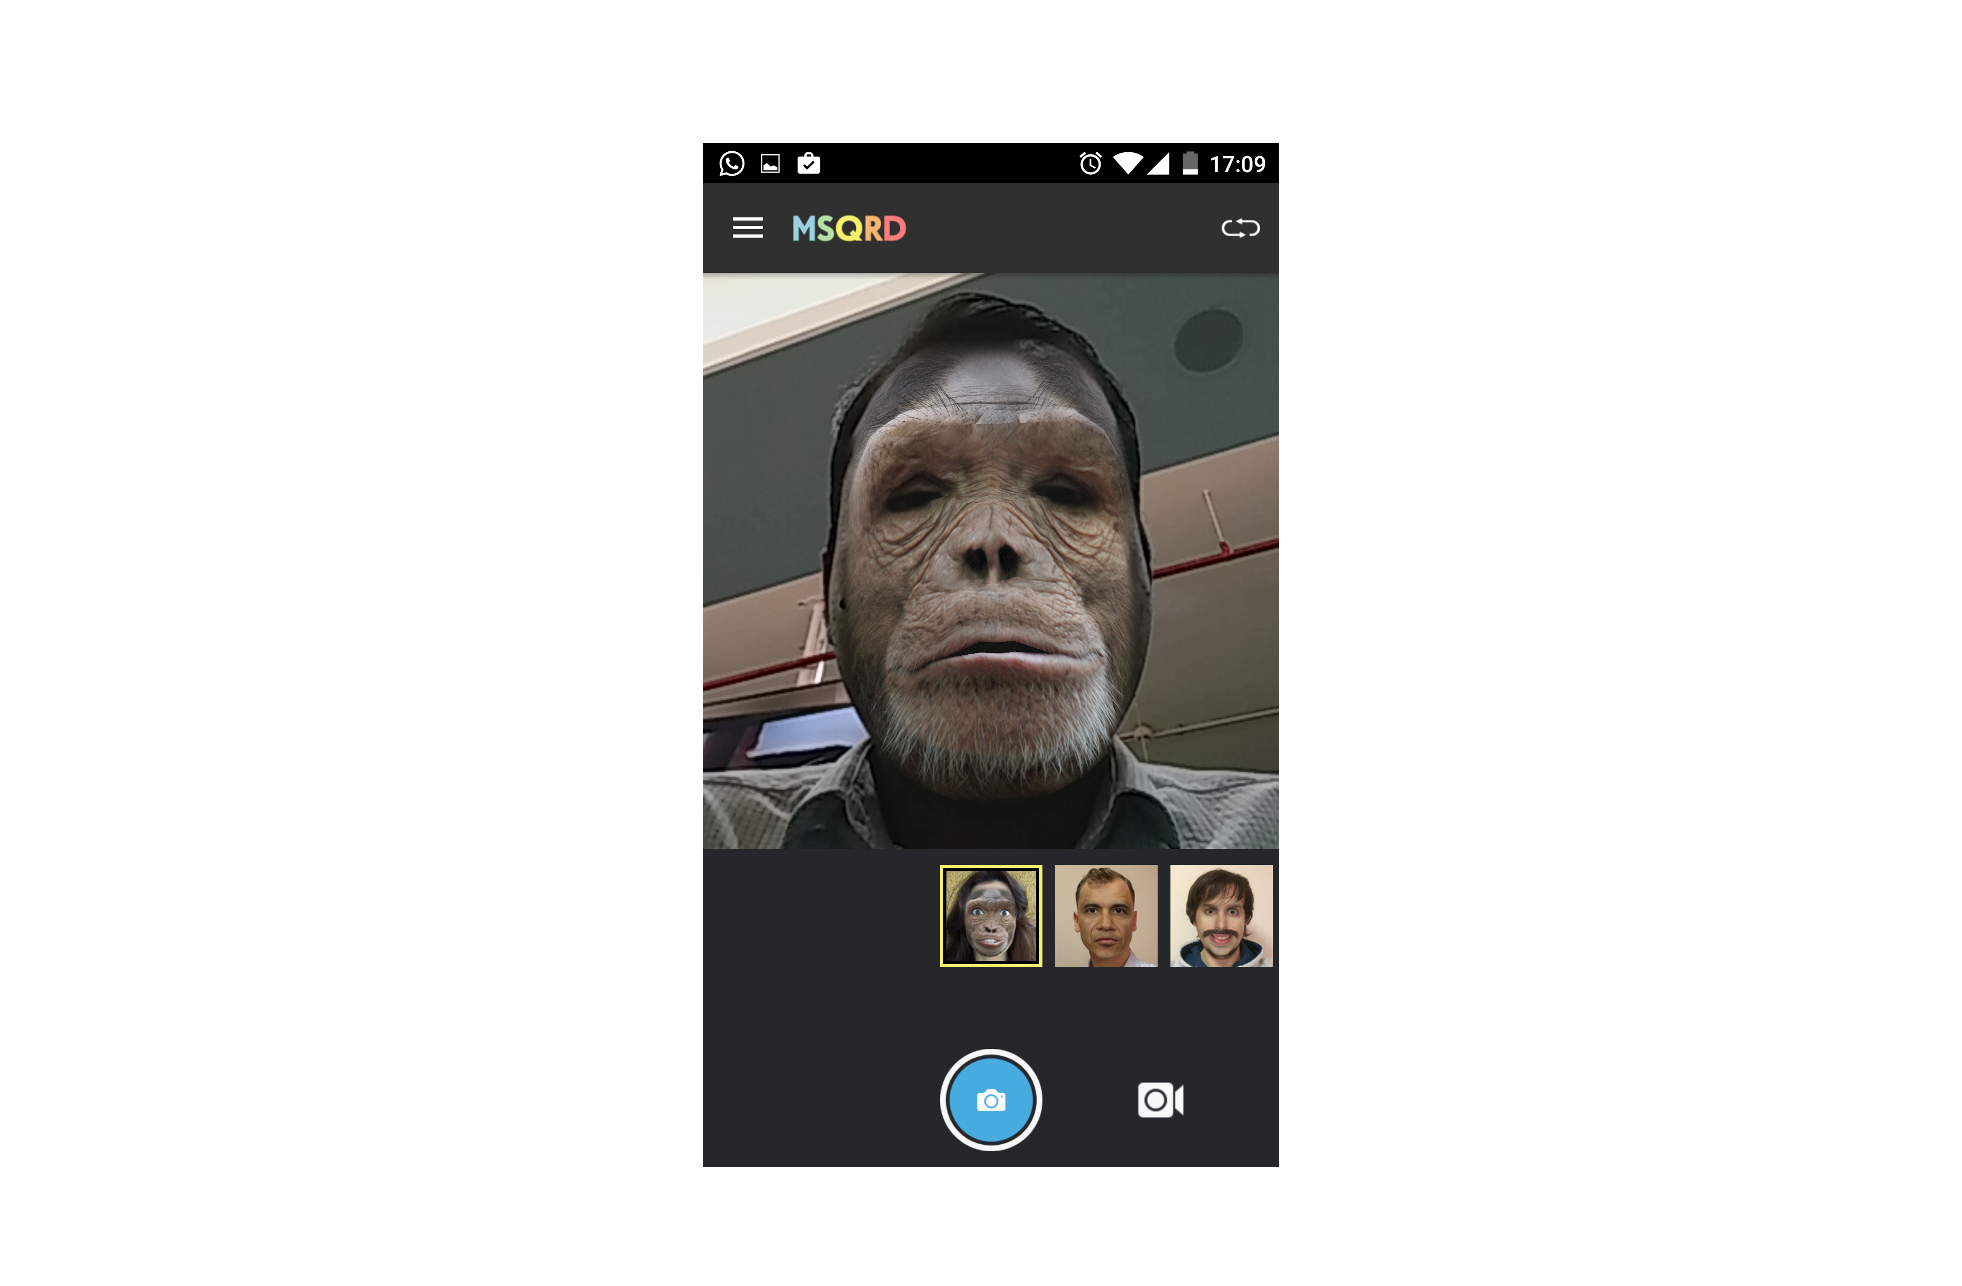 MSQRD allows users to apply funny face filters over their regular selfies